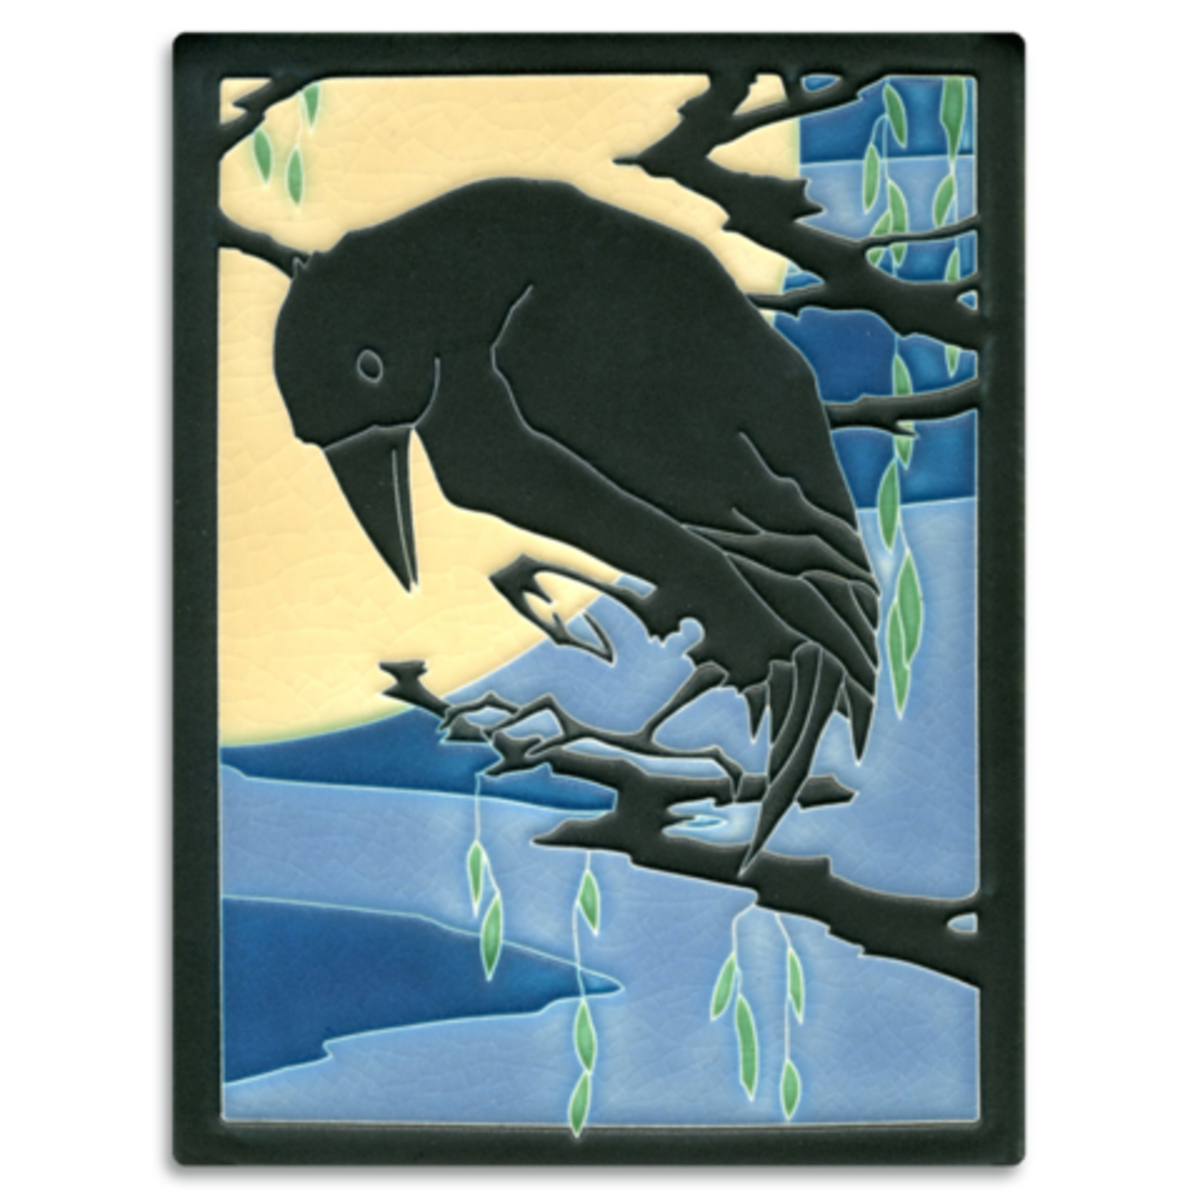 "Large 6"" x 8"" 'Raven' tile in Midnight designed by Yoshiko Yamamoto, from Motawi Tileworks."